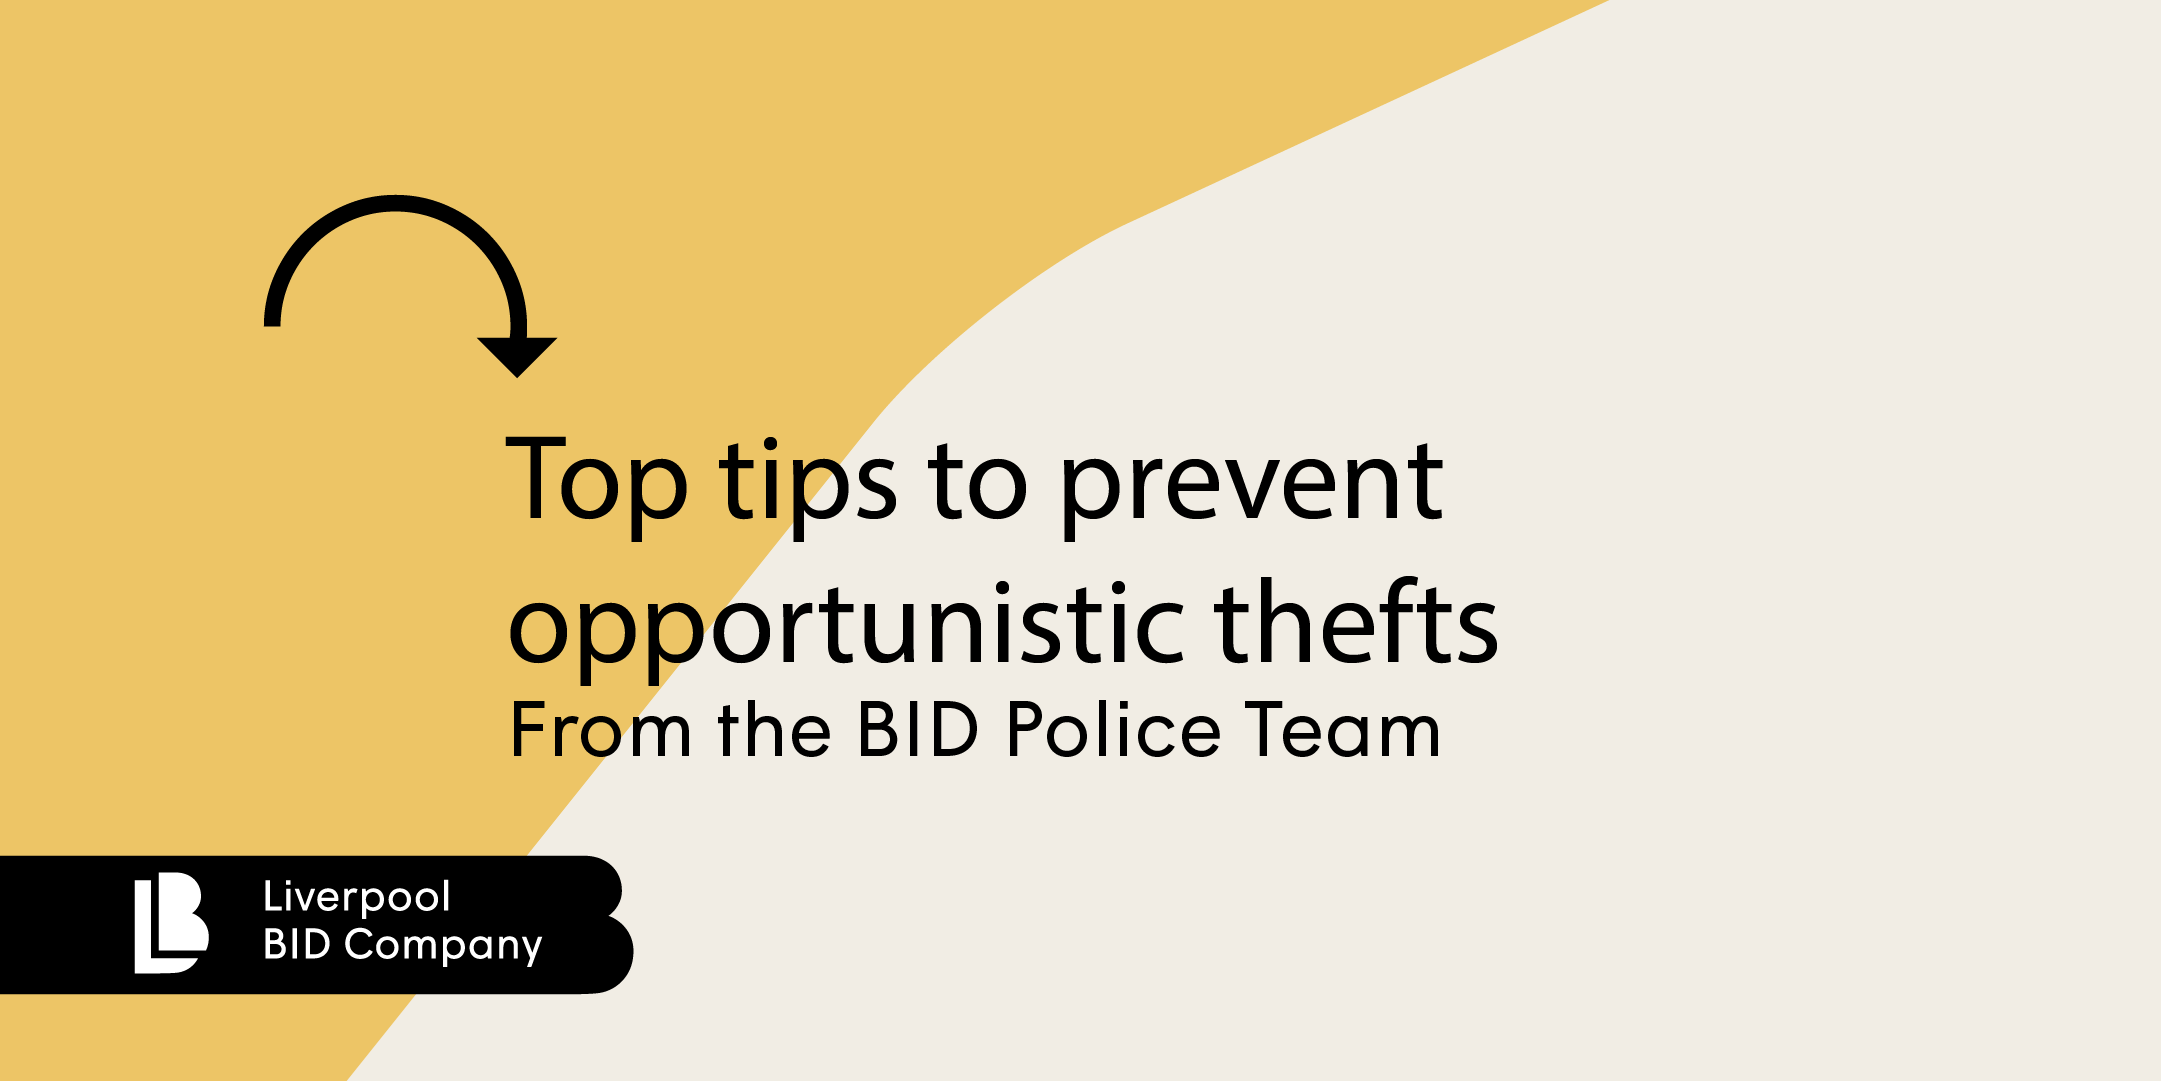 Top Tips from Liverpool BID Police Team to prevent opportunistic thefts